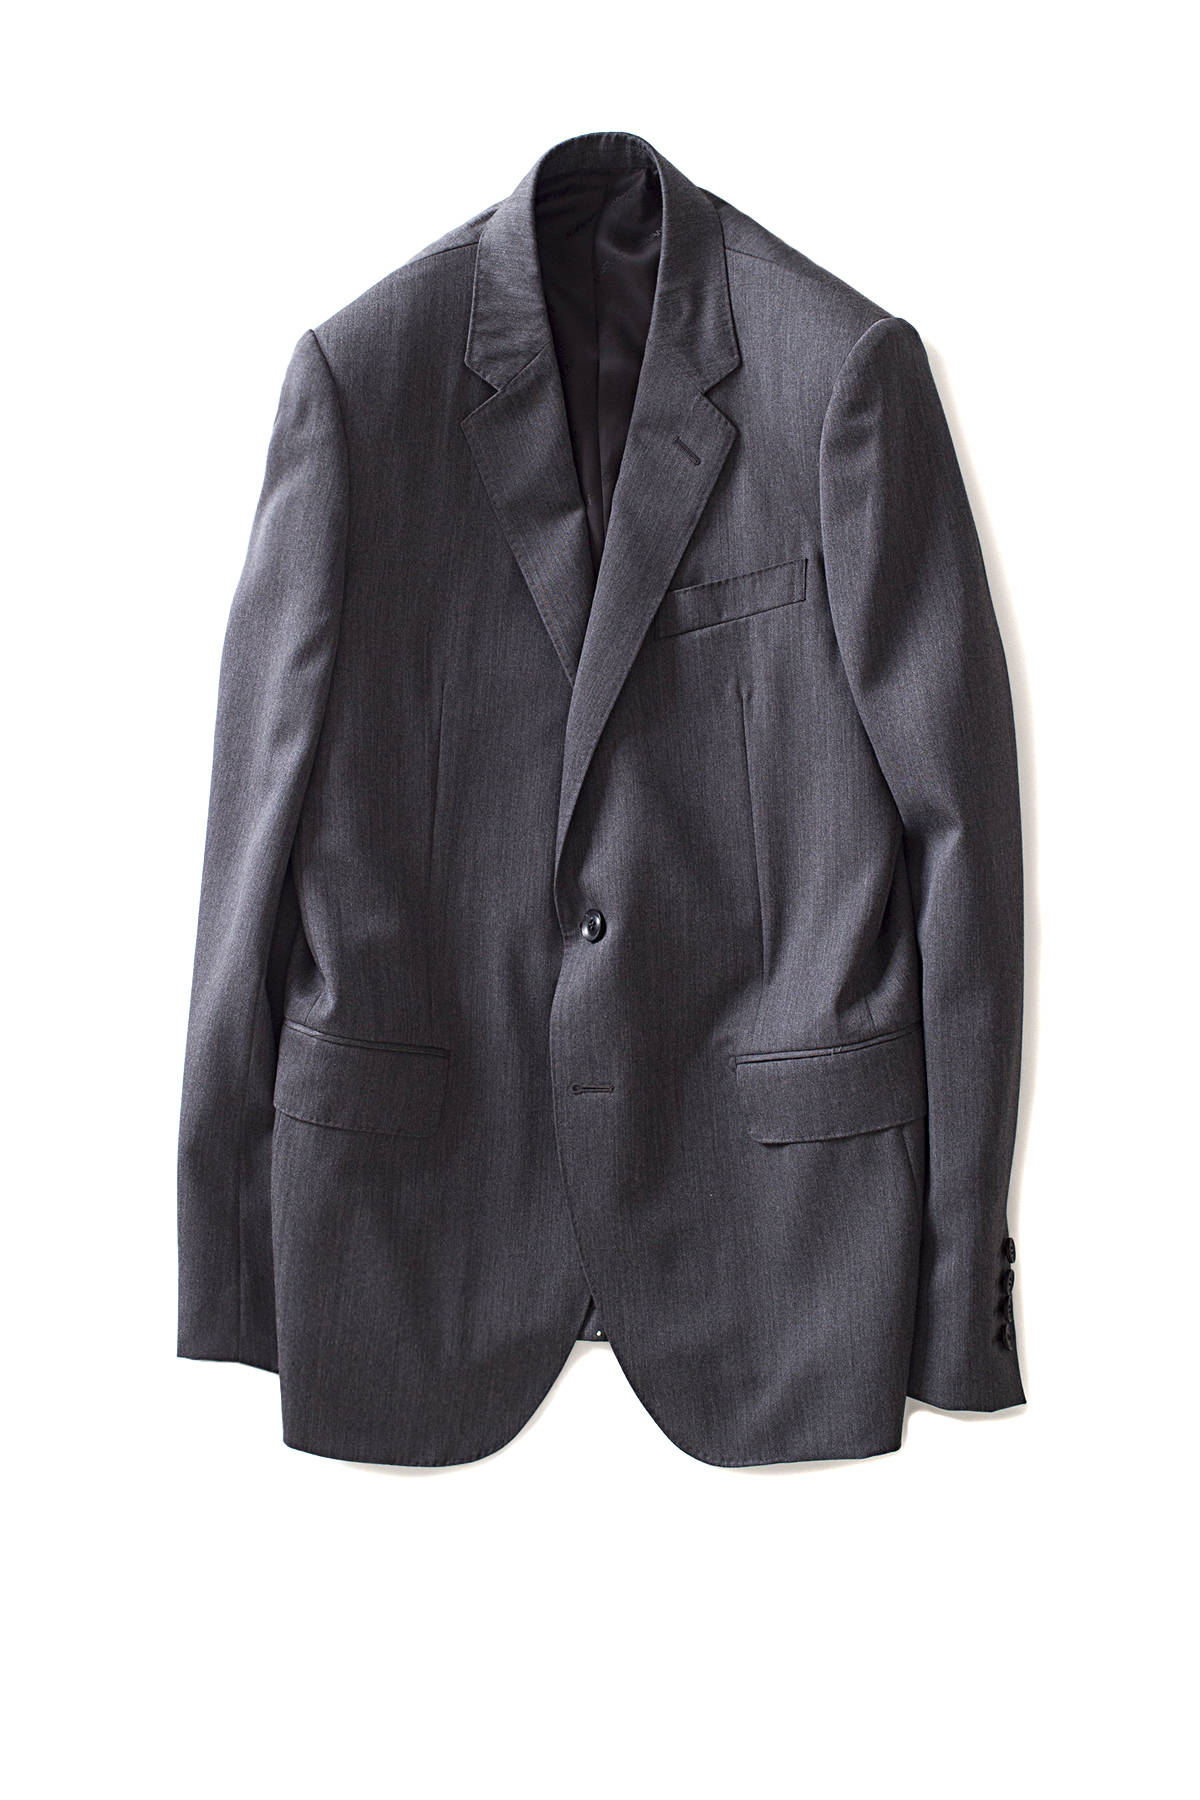 JOHN LAWRENCE SULLIVAN : Basic 2Button Tailored Jacket (Grey)